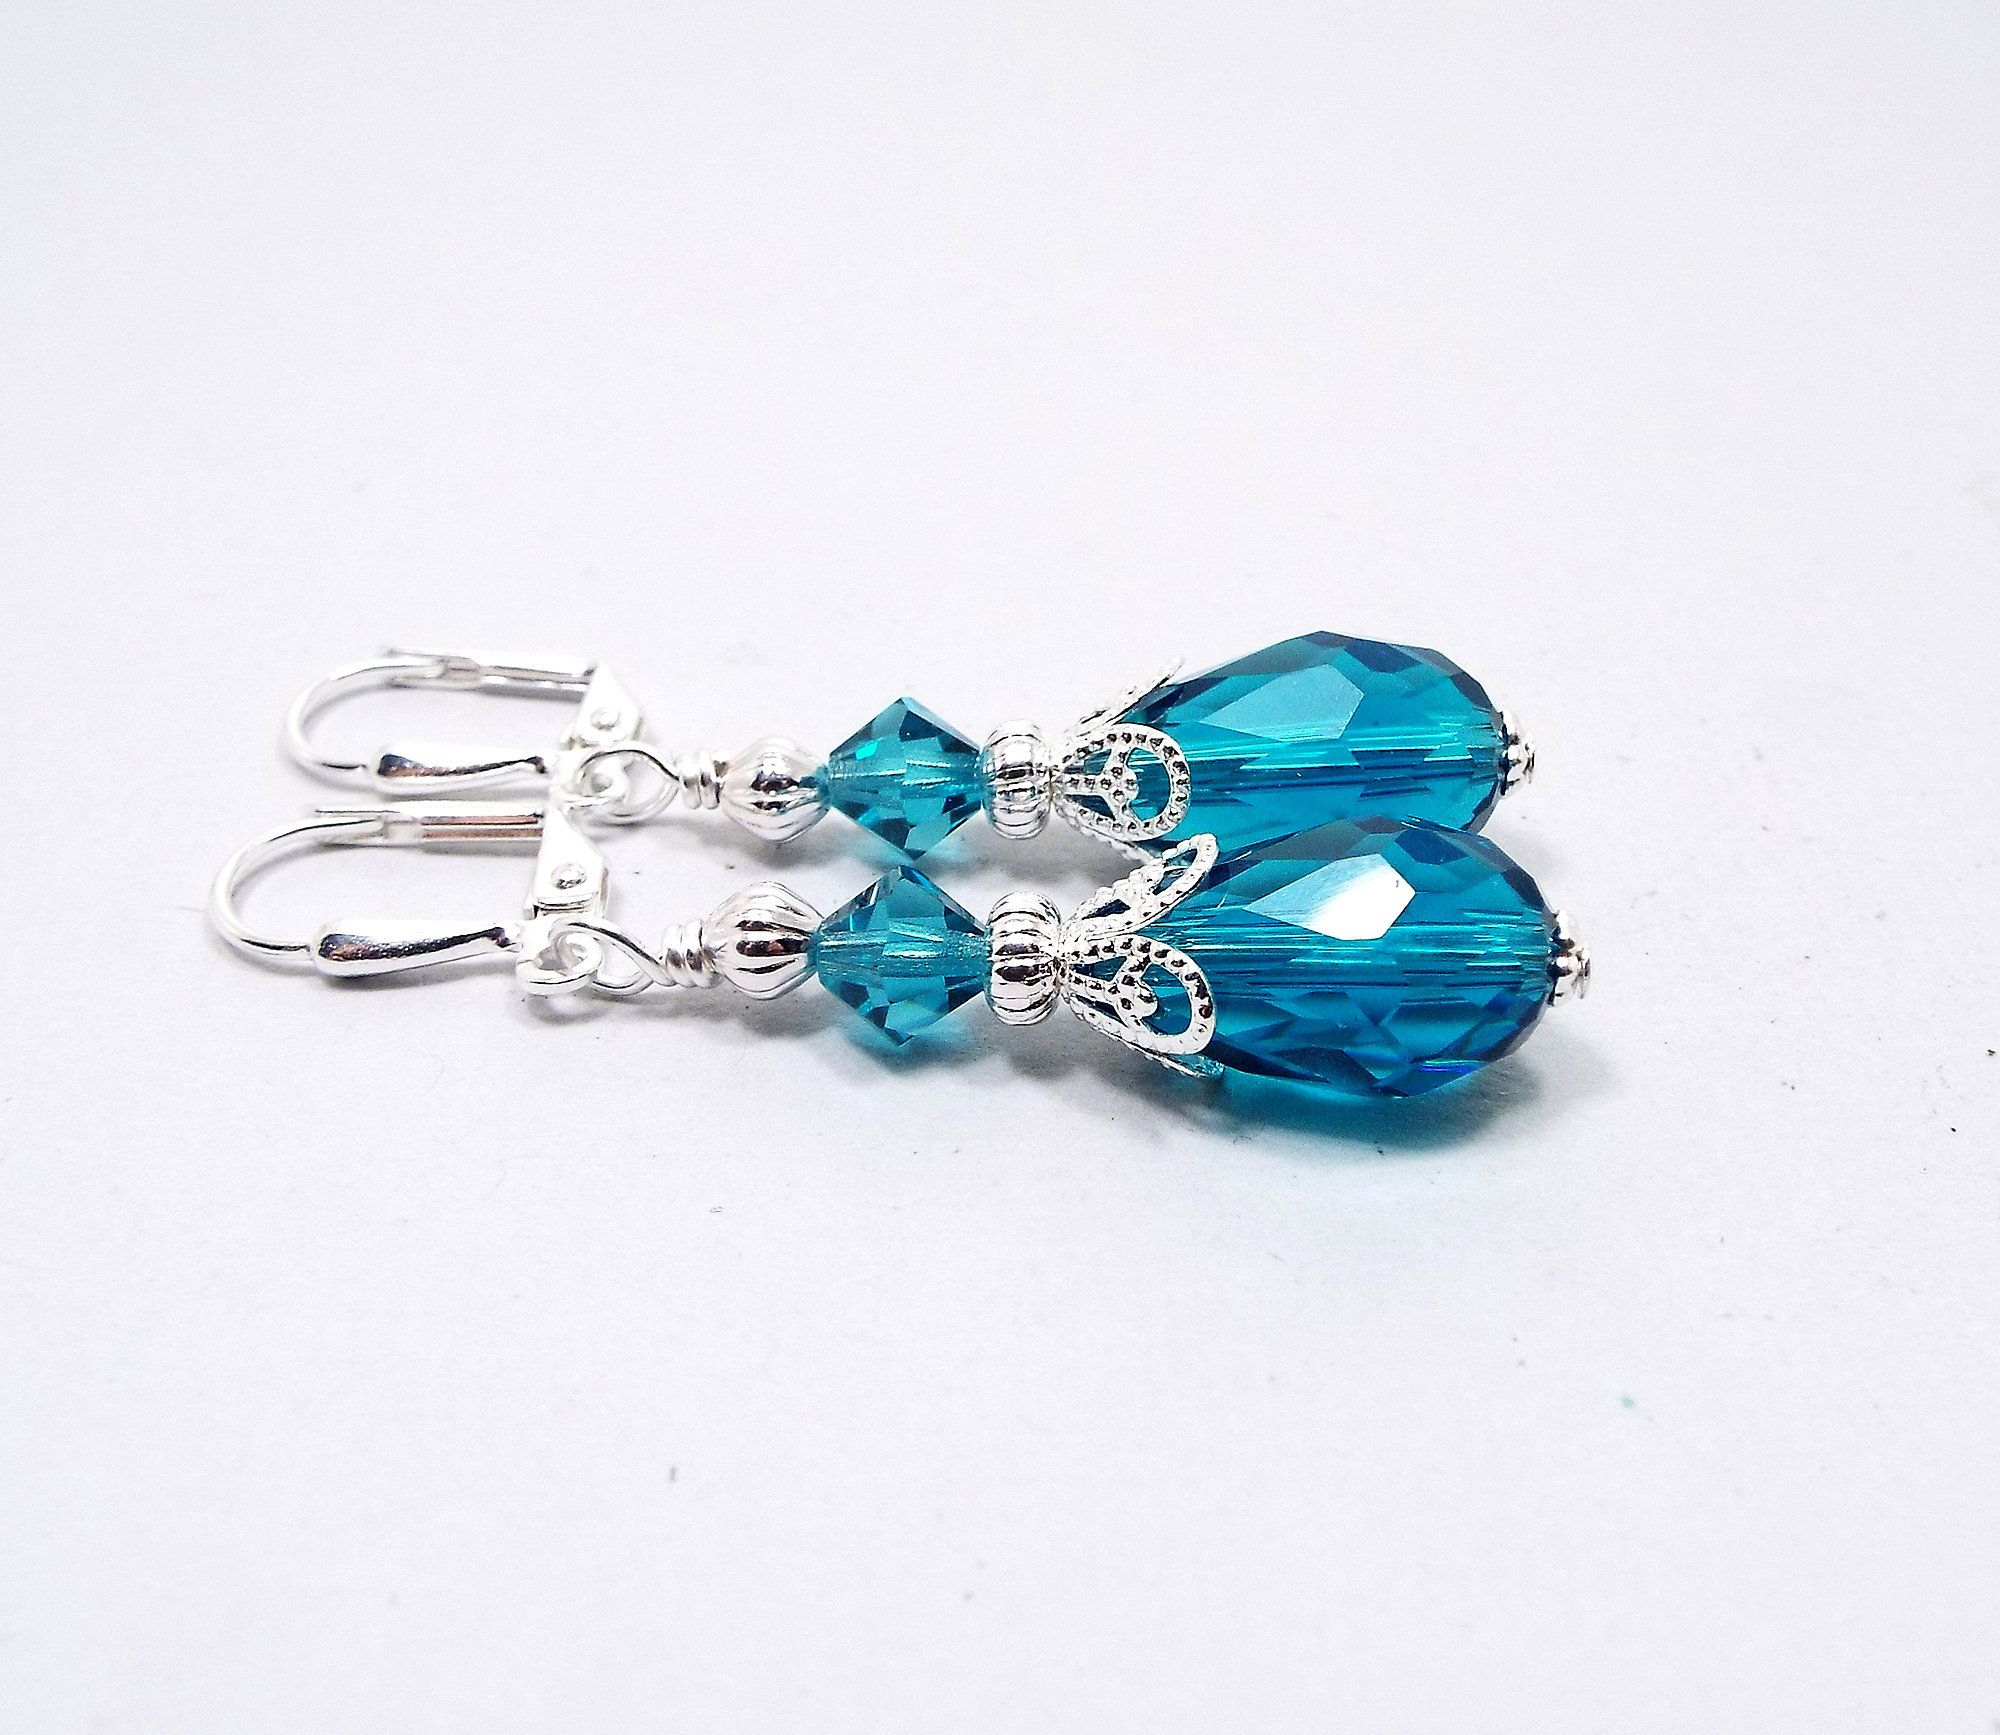 Glitz Glam Blue Diamontrigue Jewelry: Teal Blue Teardrop Earrings, Glass Crystal Beaded Dangle